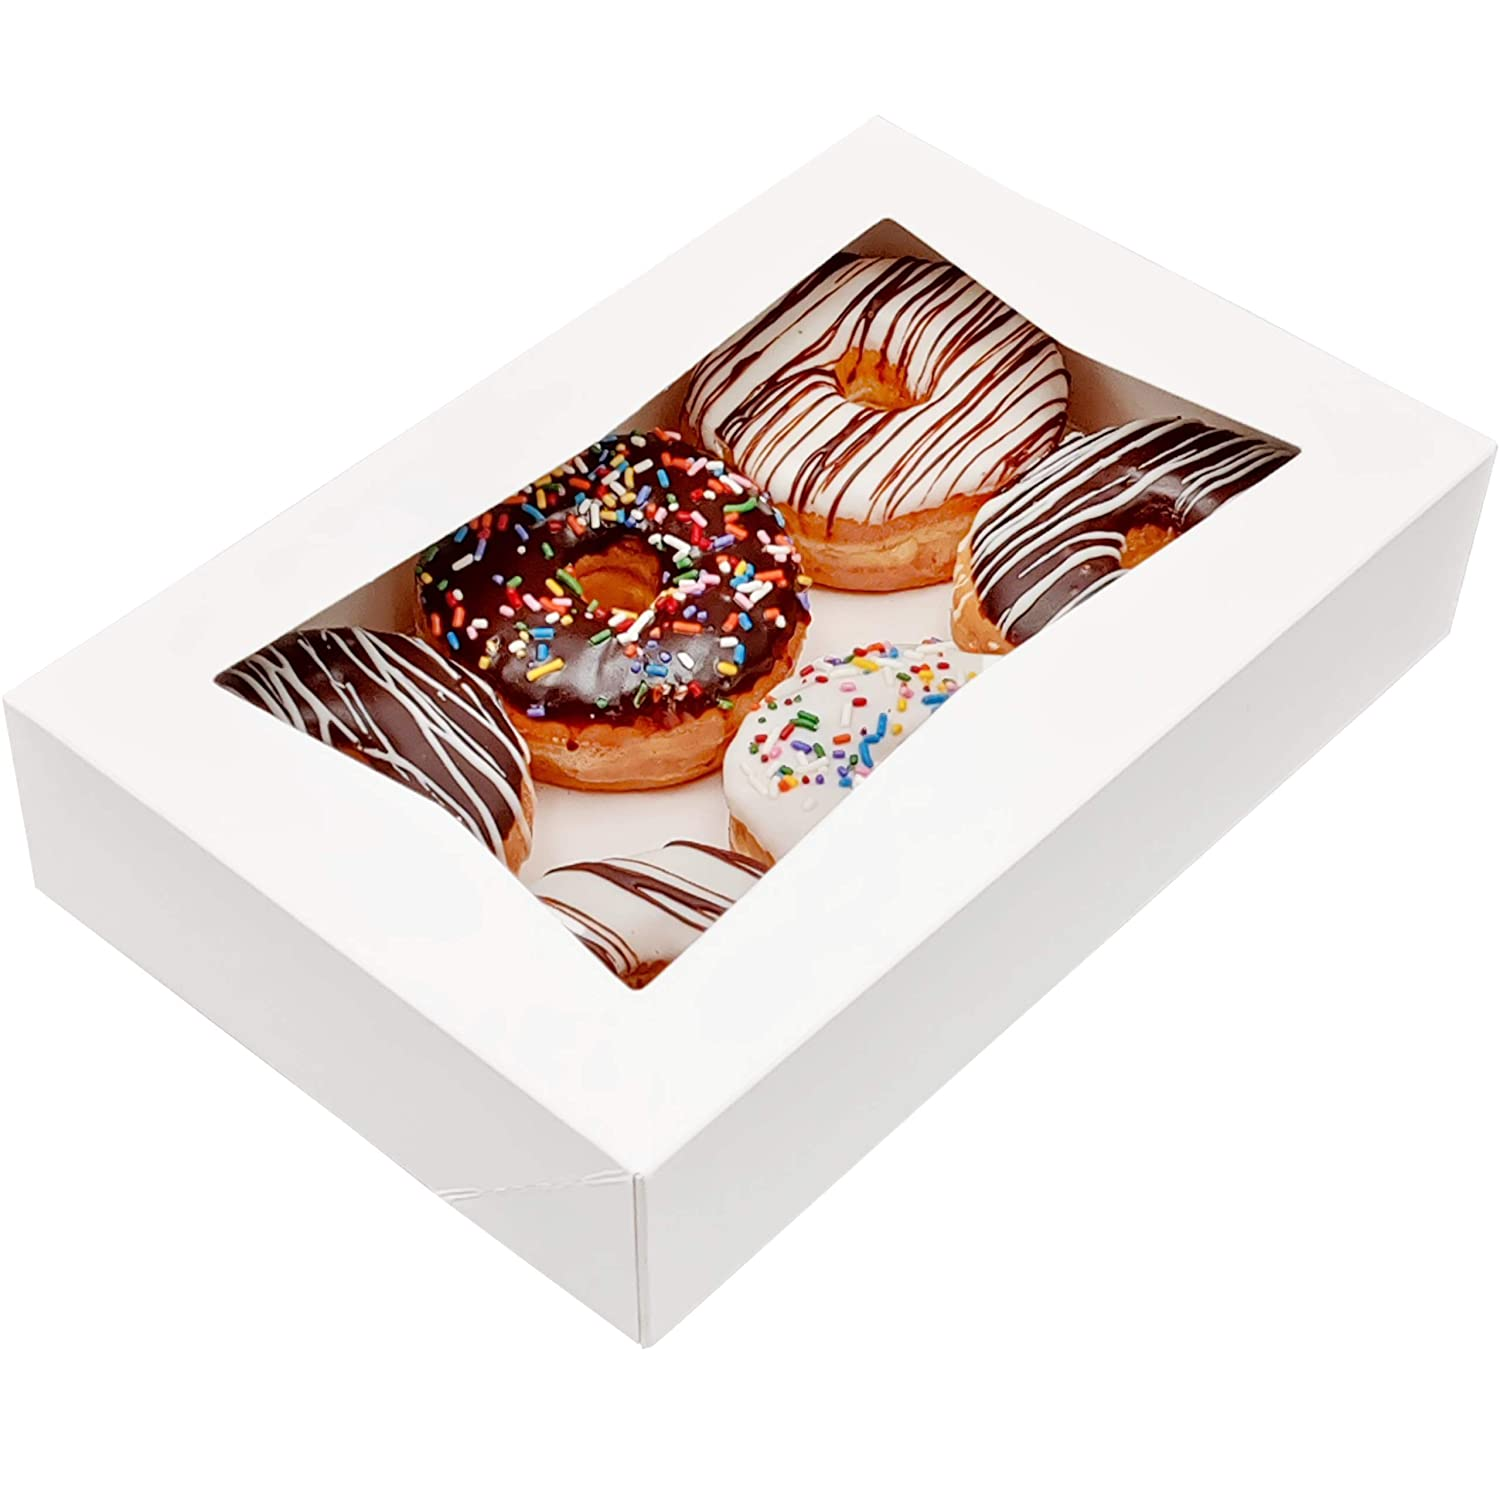 BakeLuv White Bakery Boxes with Window   12x8x2.5 Inches   12 Pack   Dessert Boxes   Pastry Boxes   Cookie Boxes   Donut Boxes   Brownies, Chocolate Strawberries, Cake, Muffins, Treats  Thick & Sturdy 350 GSM   Auto-Popup